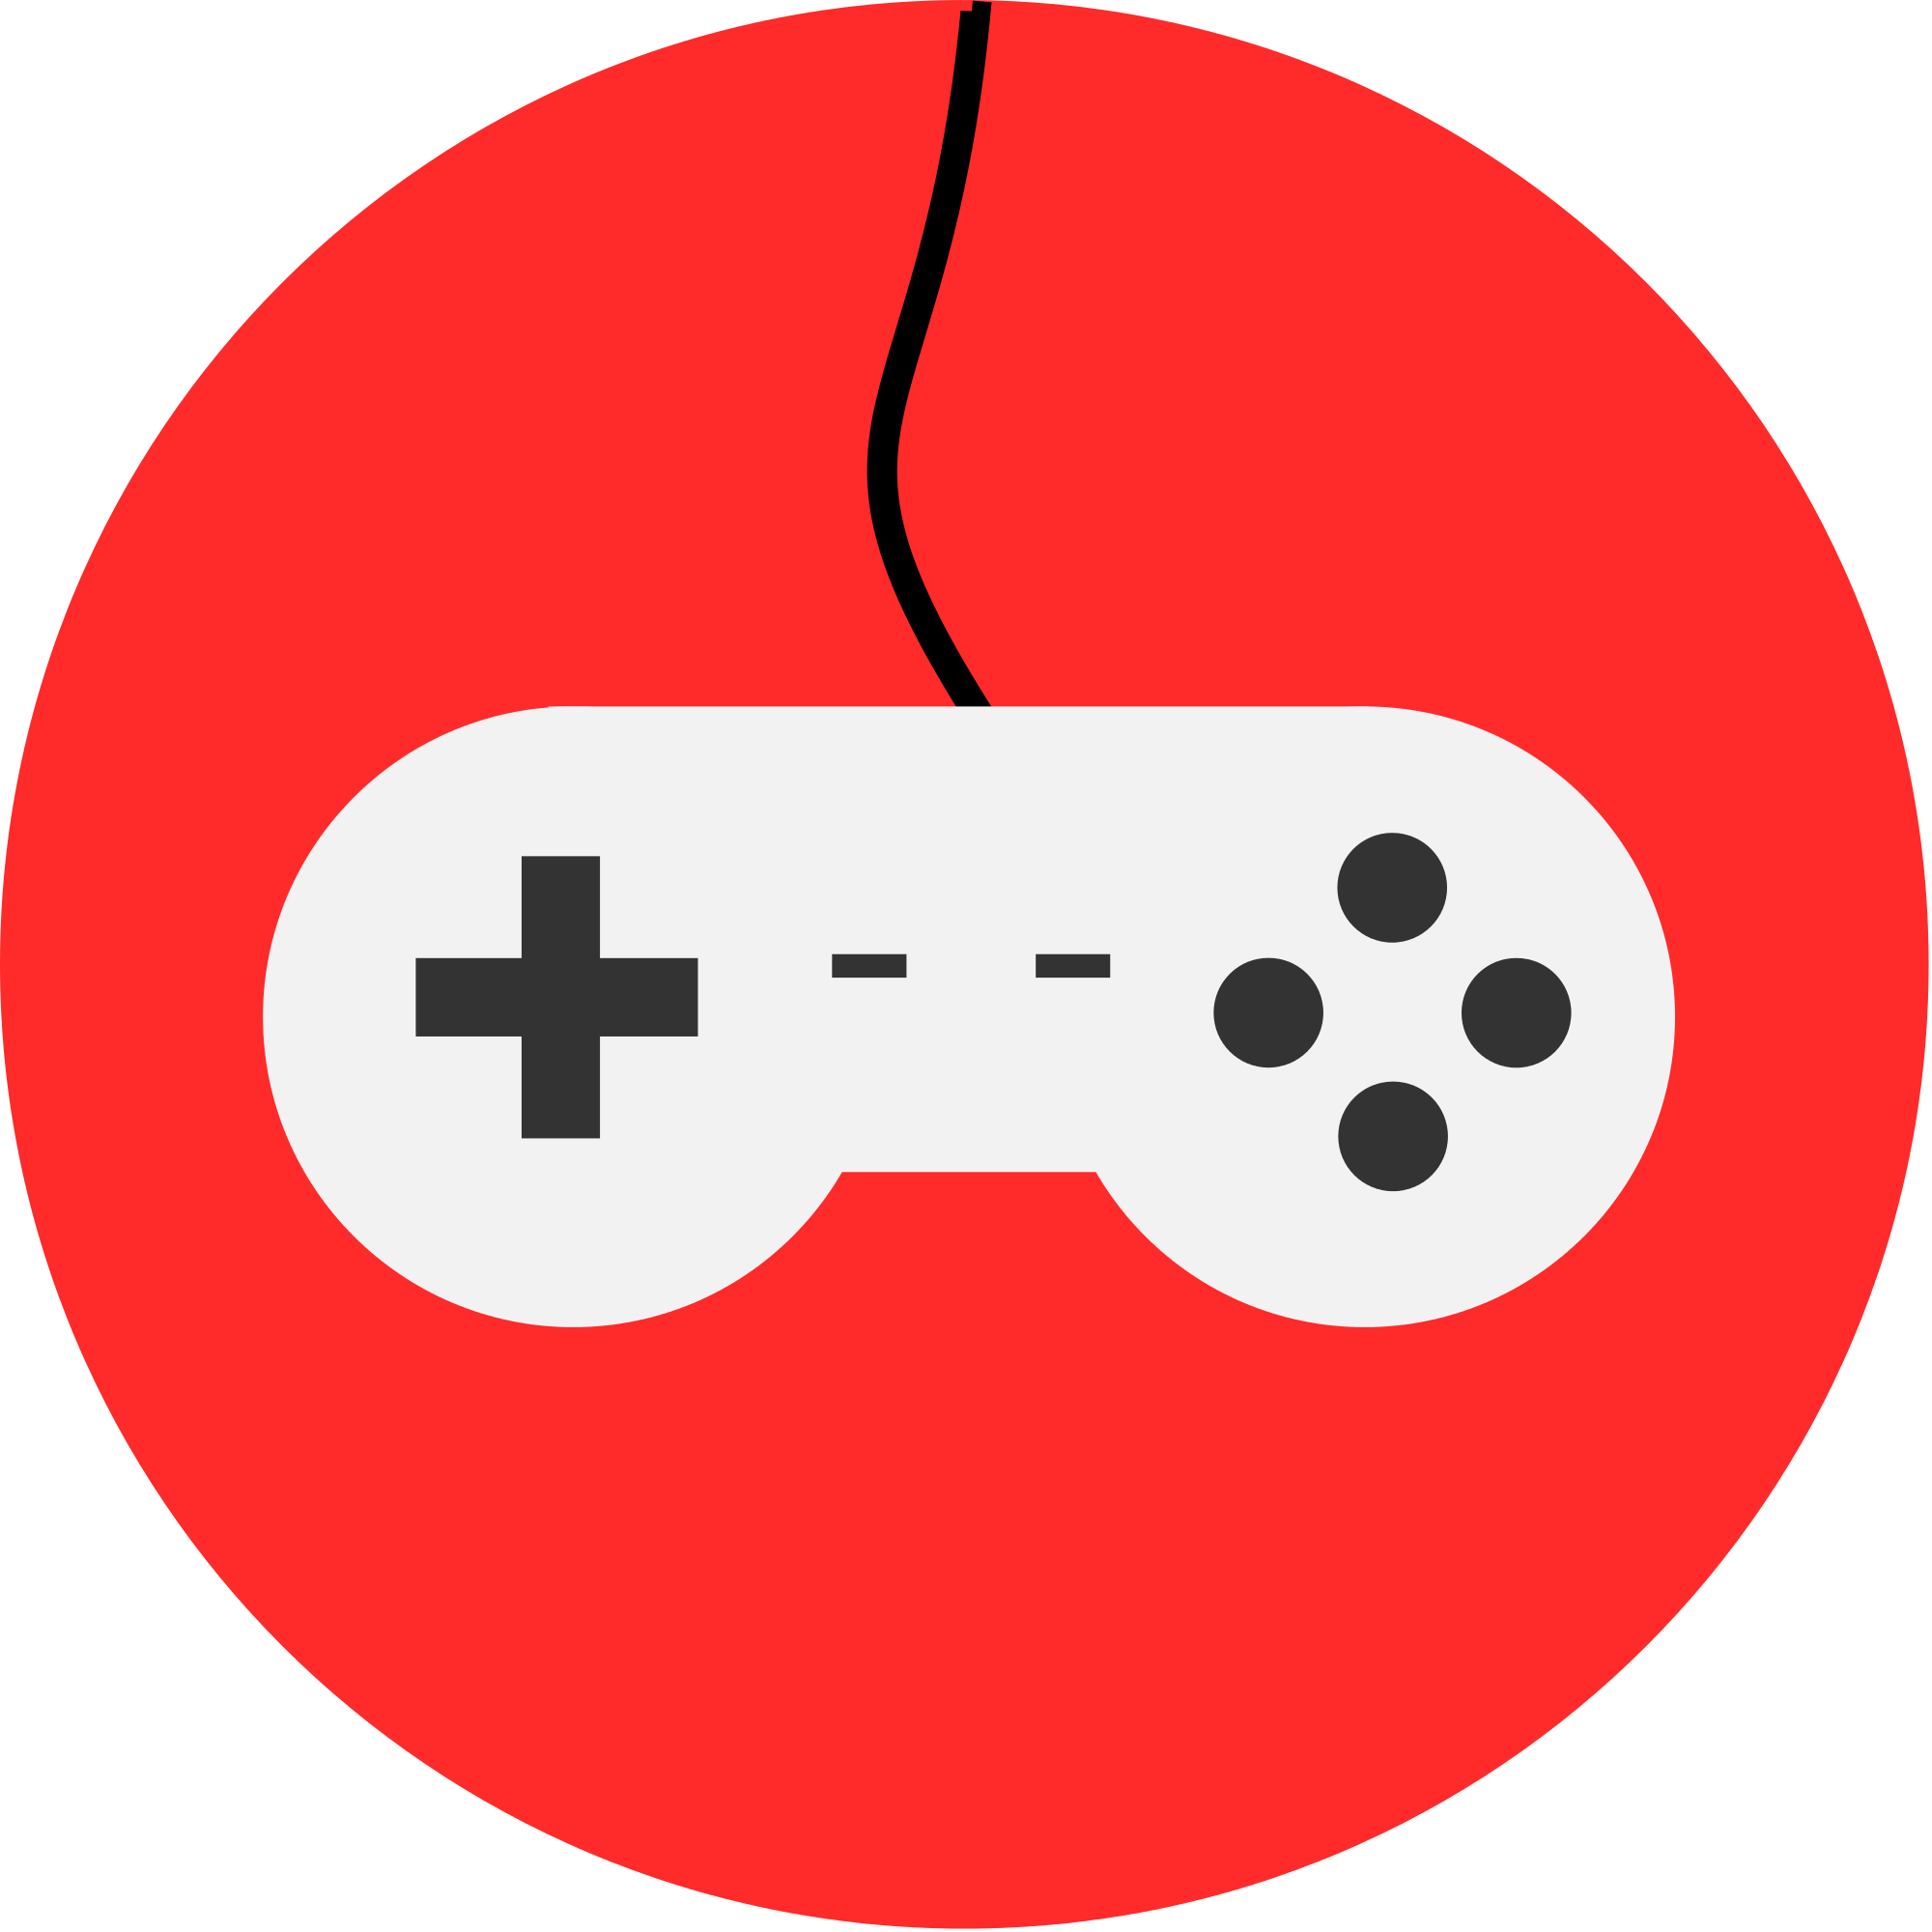 Video Game svg #7, Download drawings